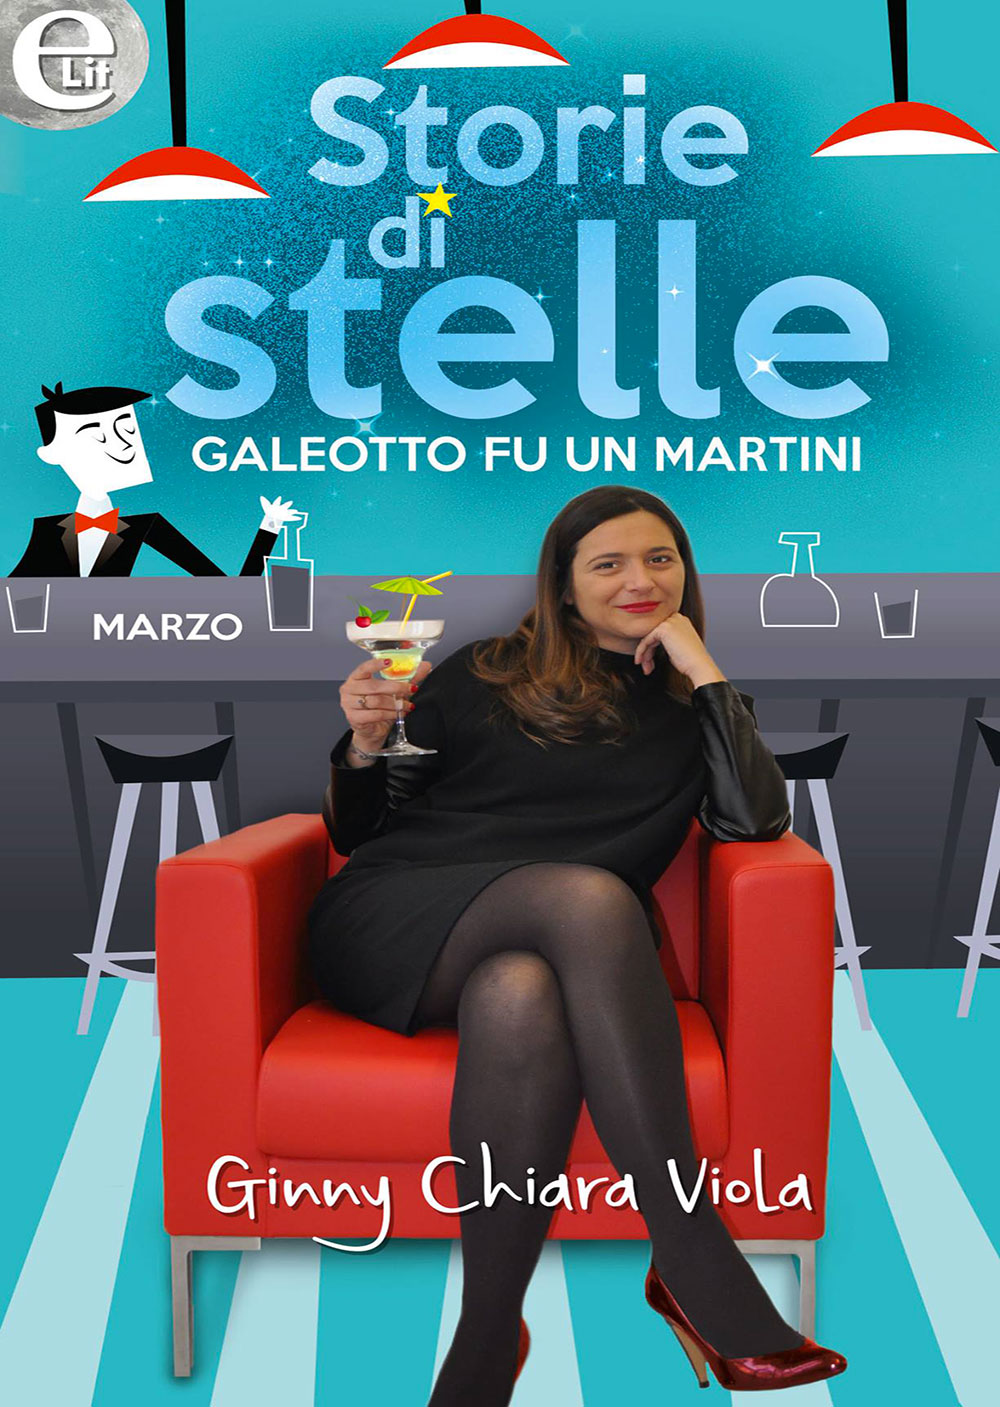 Galeotto fu un Martini